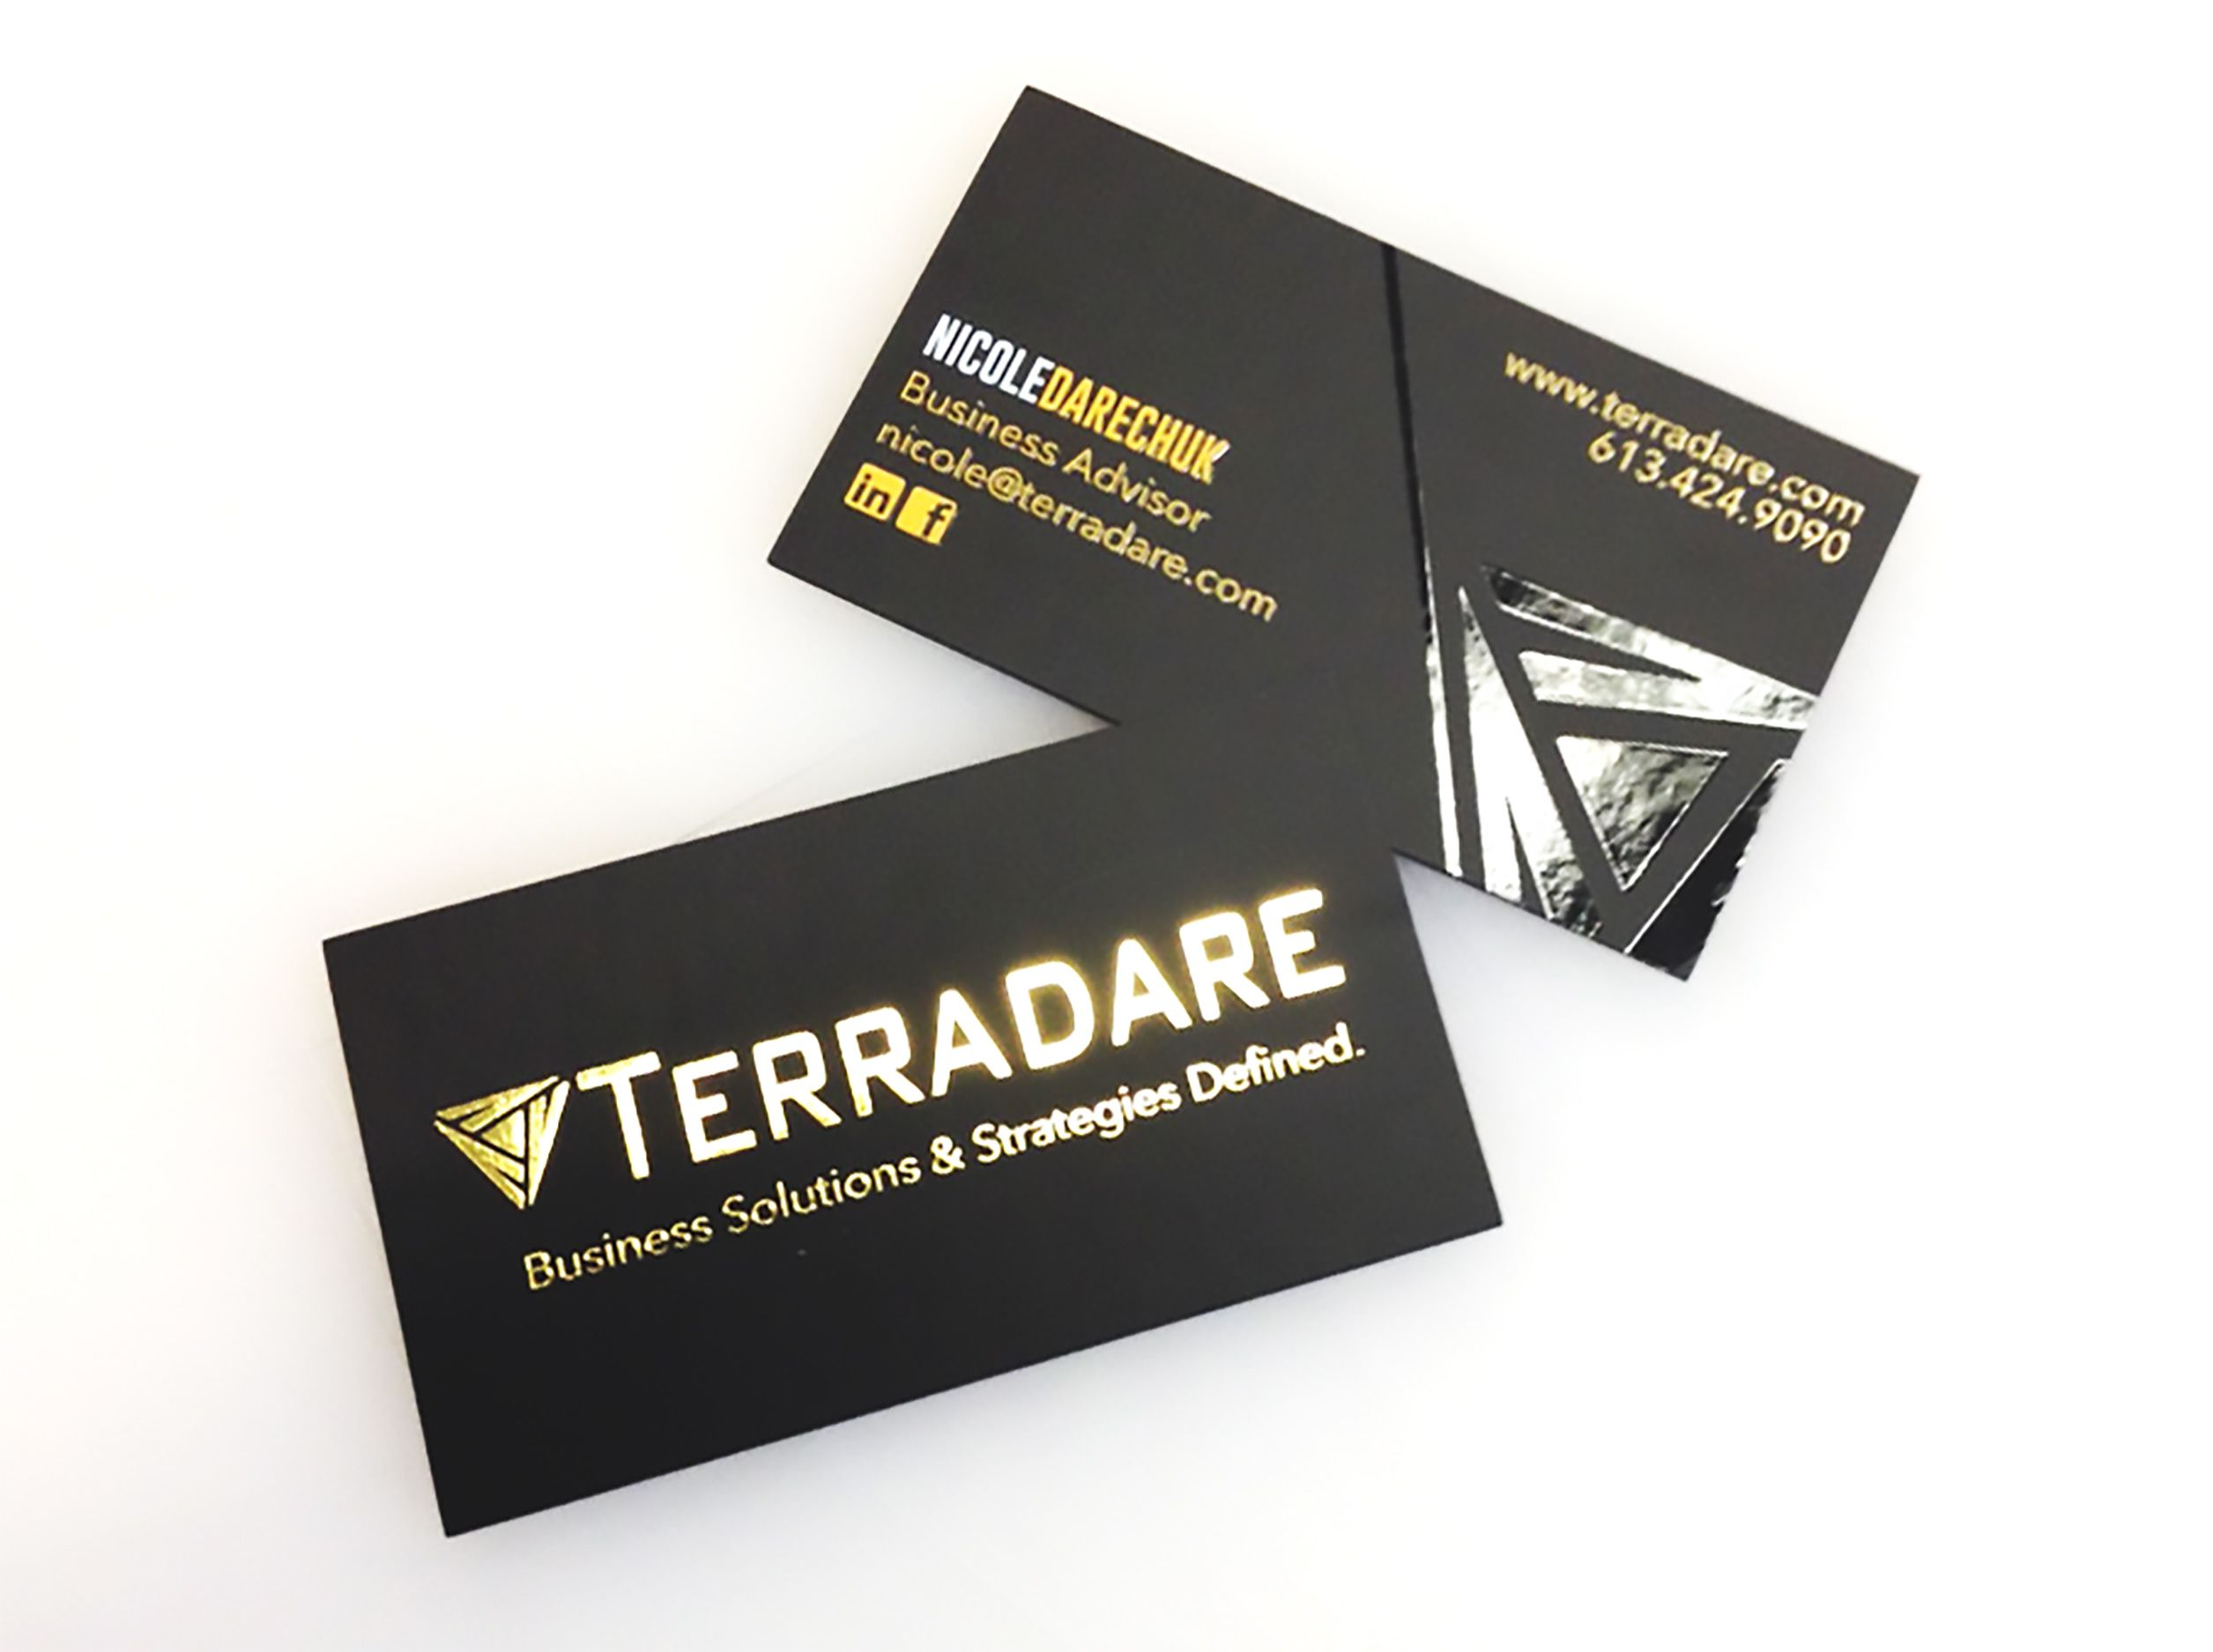 These awesome looking business cards for nicole darechuk with these awesome looking business cards for nicole darechuk with terradare designed in house by reheart Choice Image